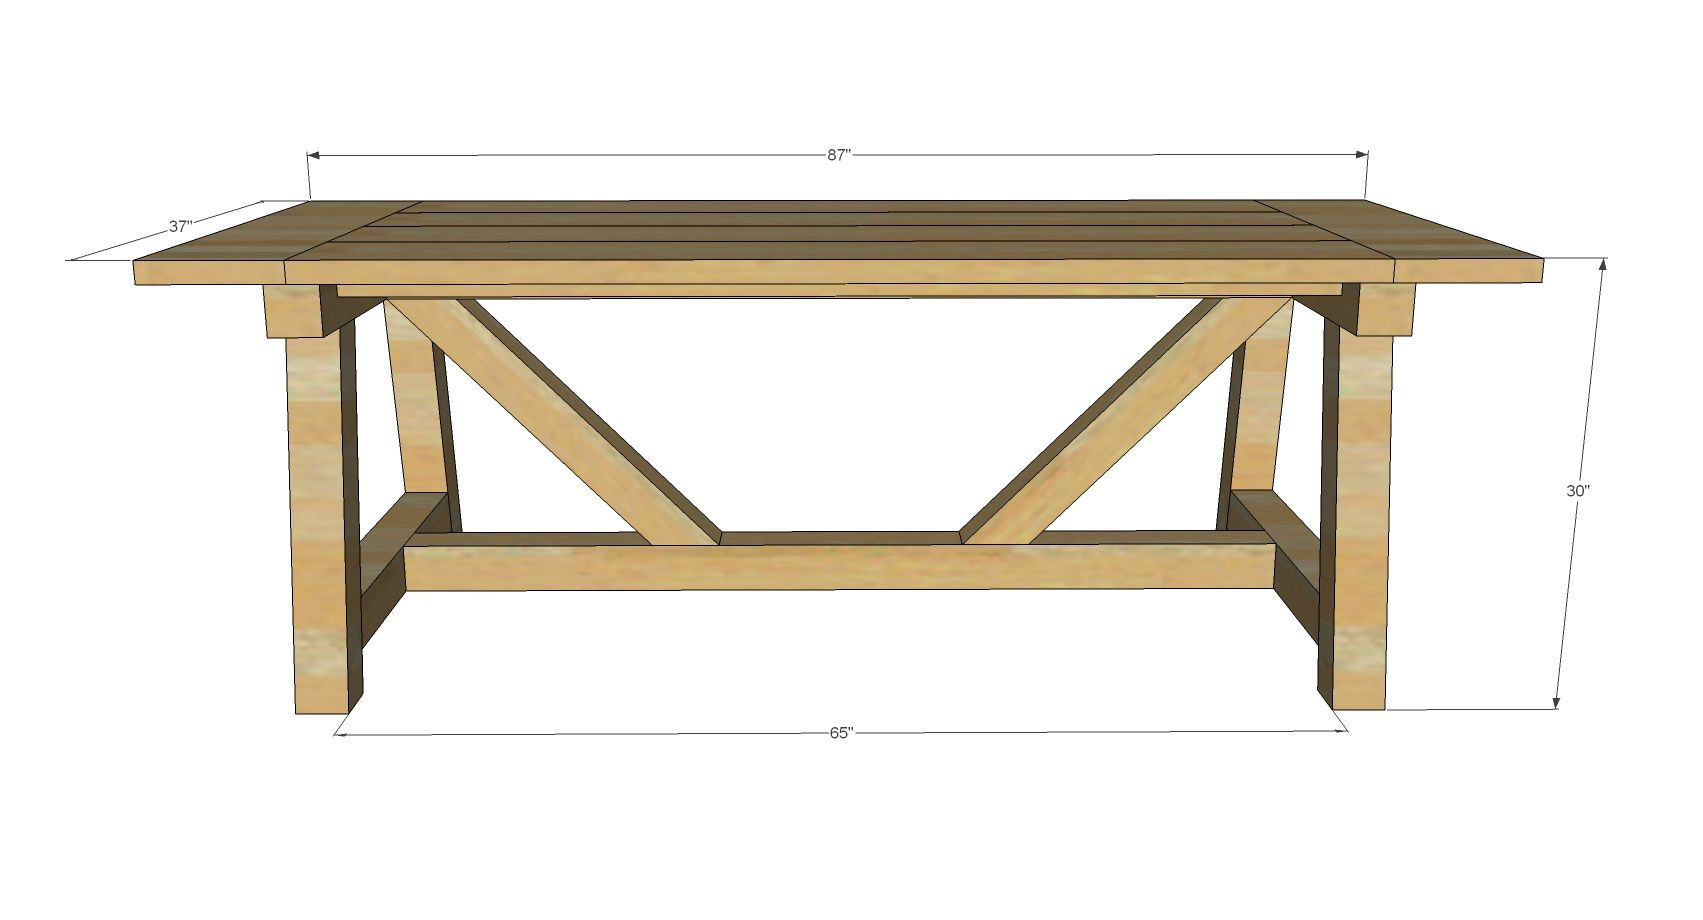 Ana white build a 4x4 truss beam table free and easy for 4x4 dining table